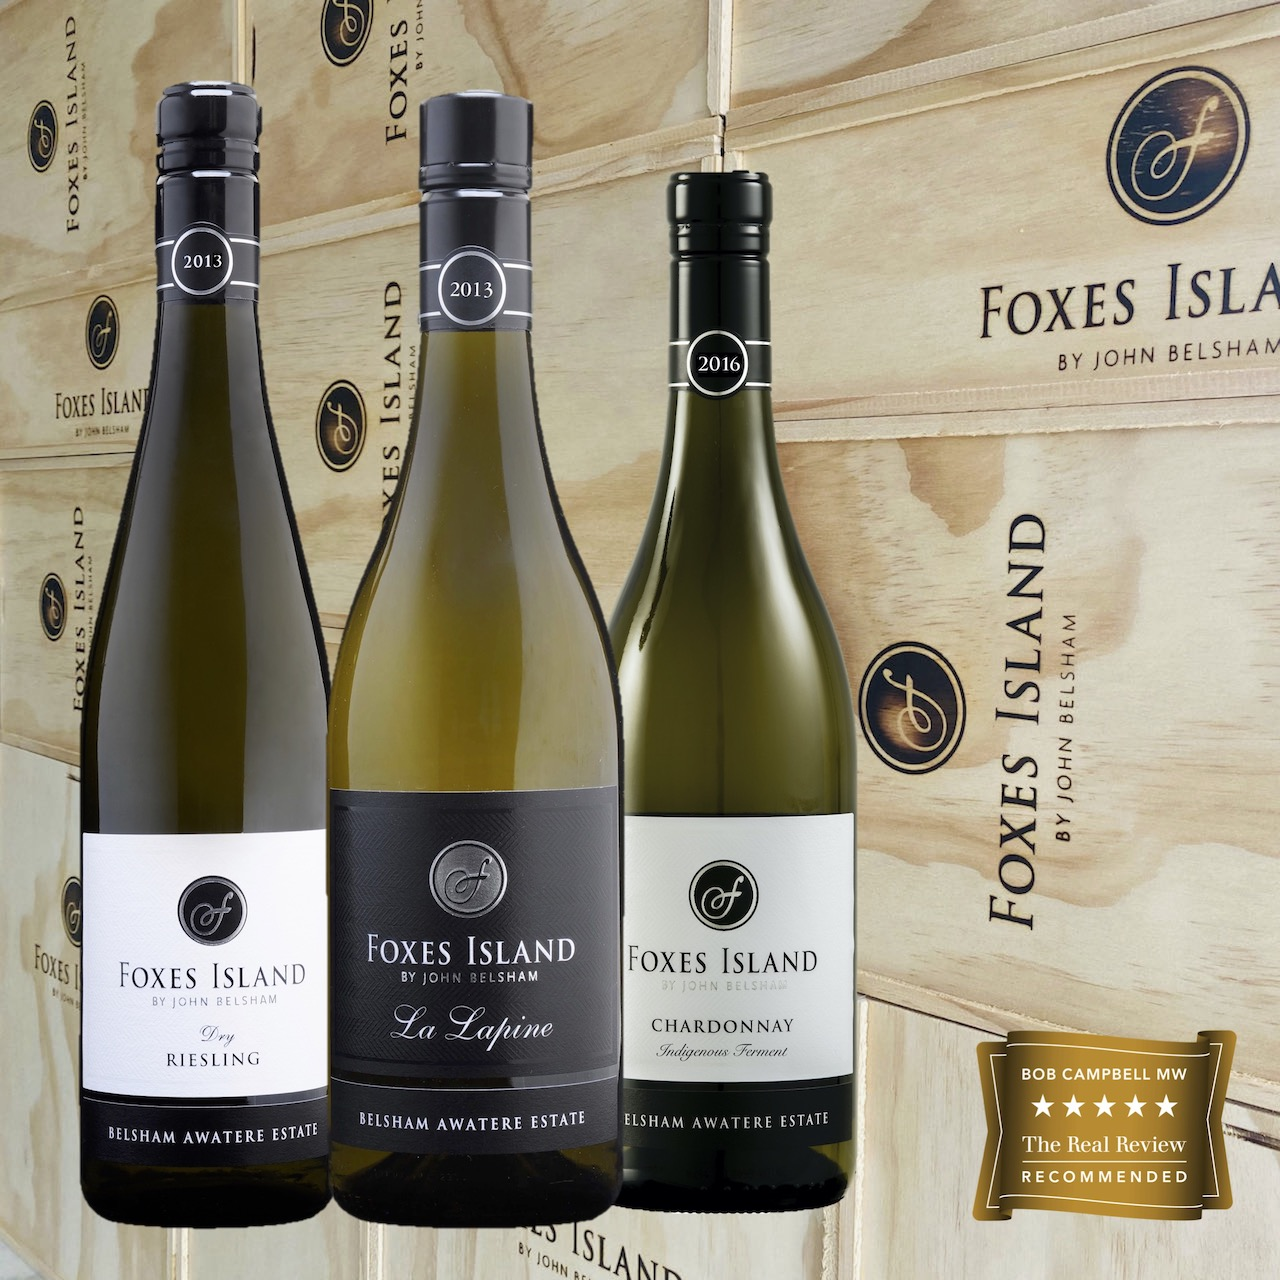 Foxes Island Great White Wines